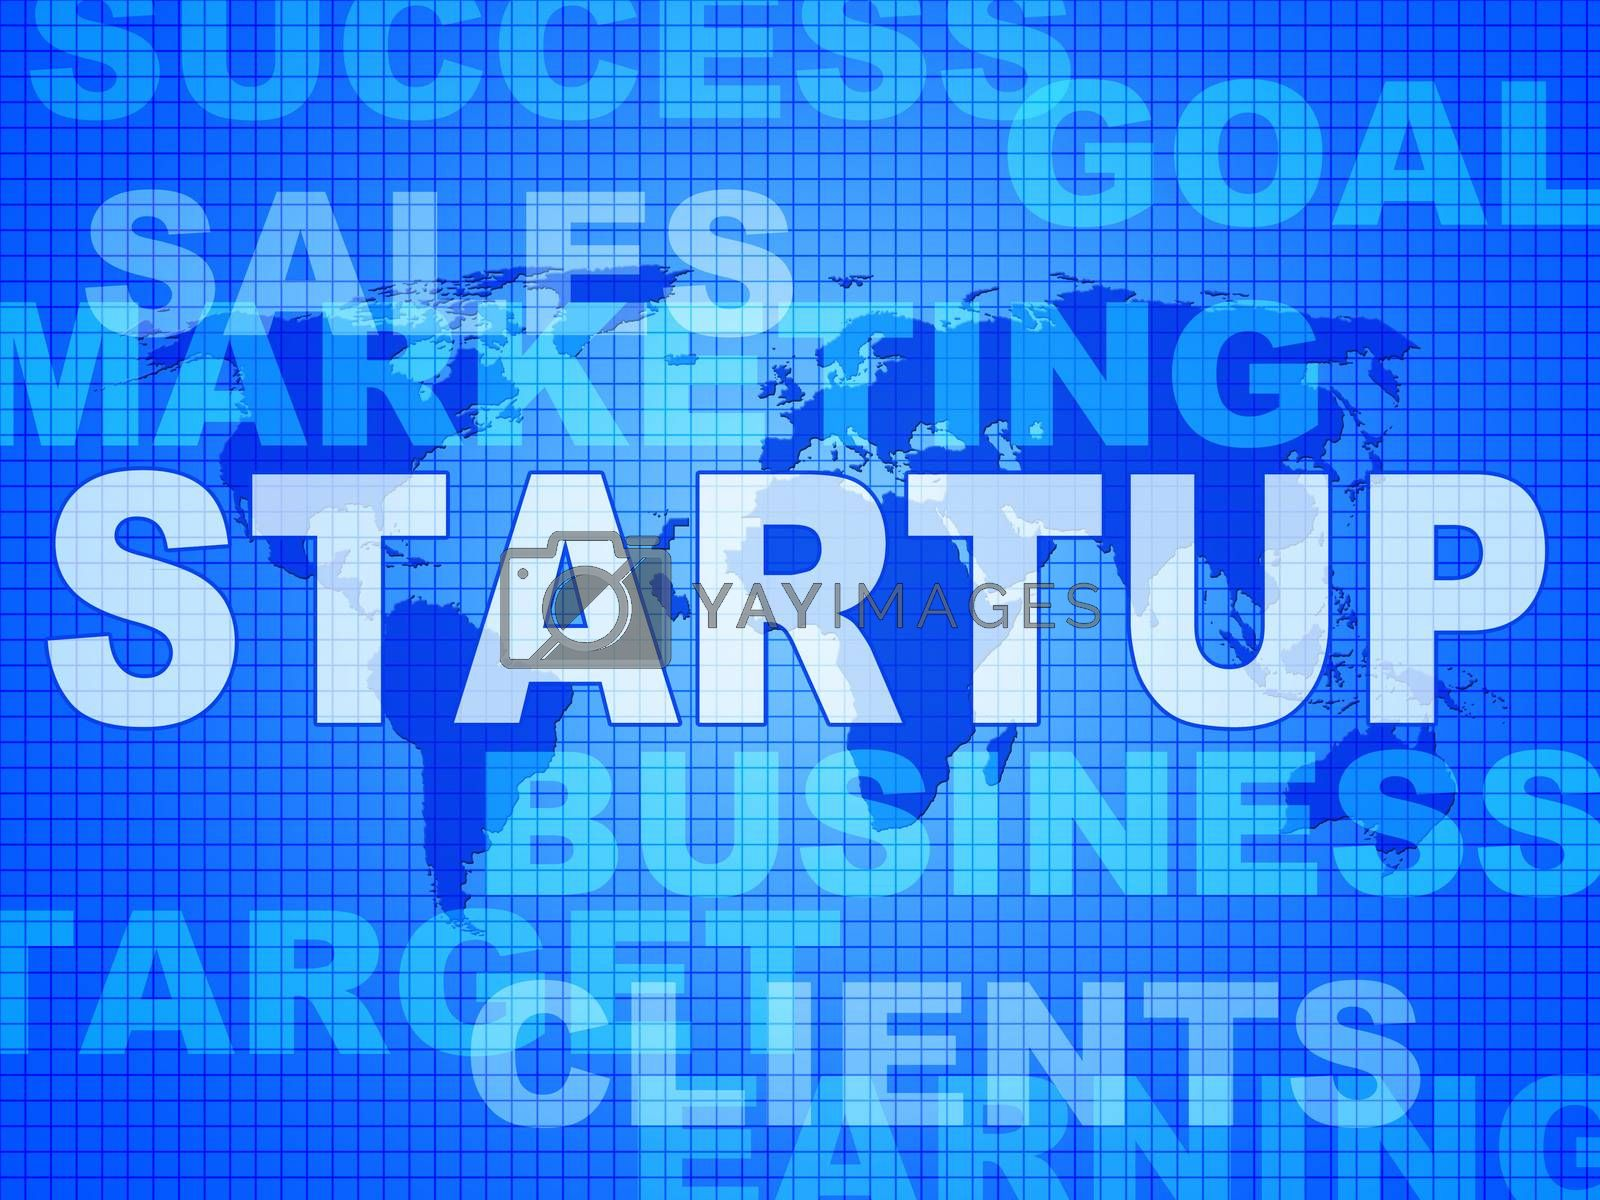 Startup Words Means Self Employed And Entrepreneur by stuartmiles